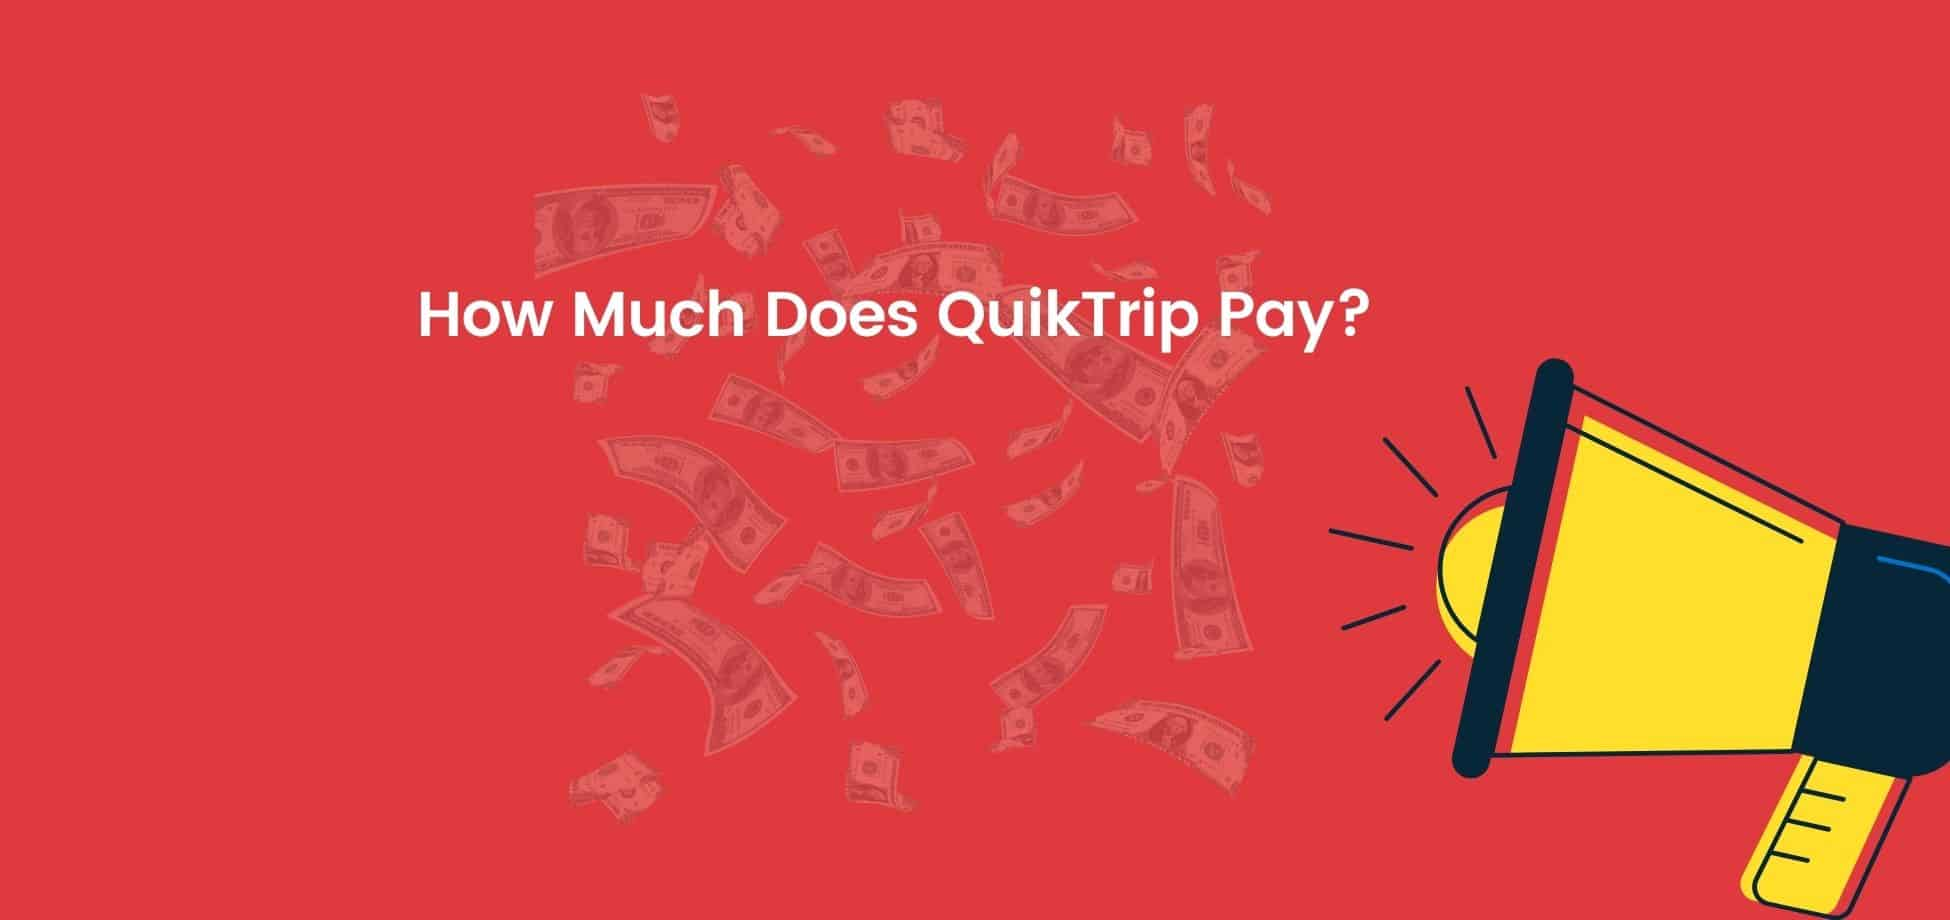 QuikTrip pays its employees very well and motivates them to seek promotions within the company.